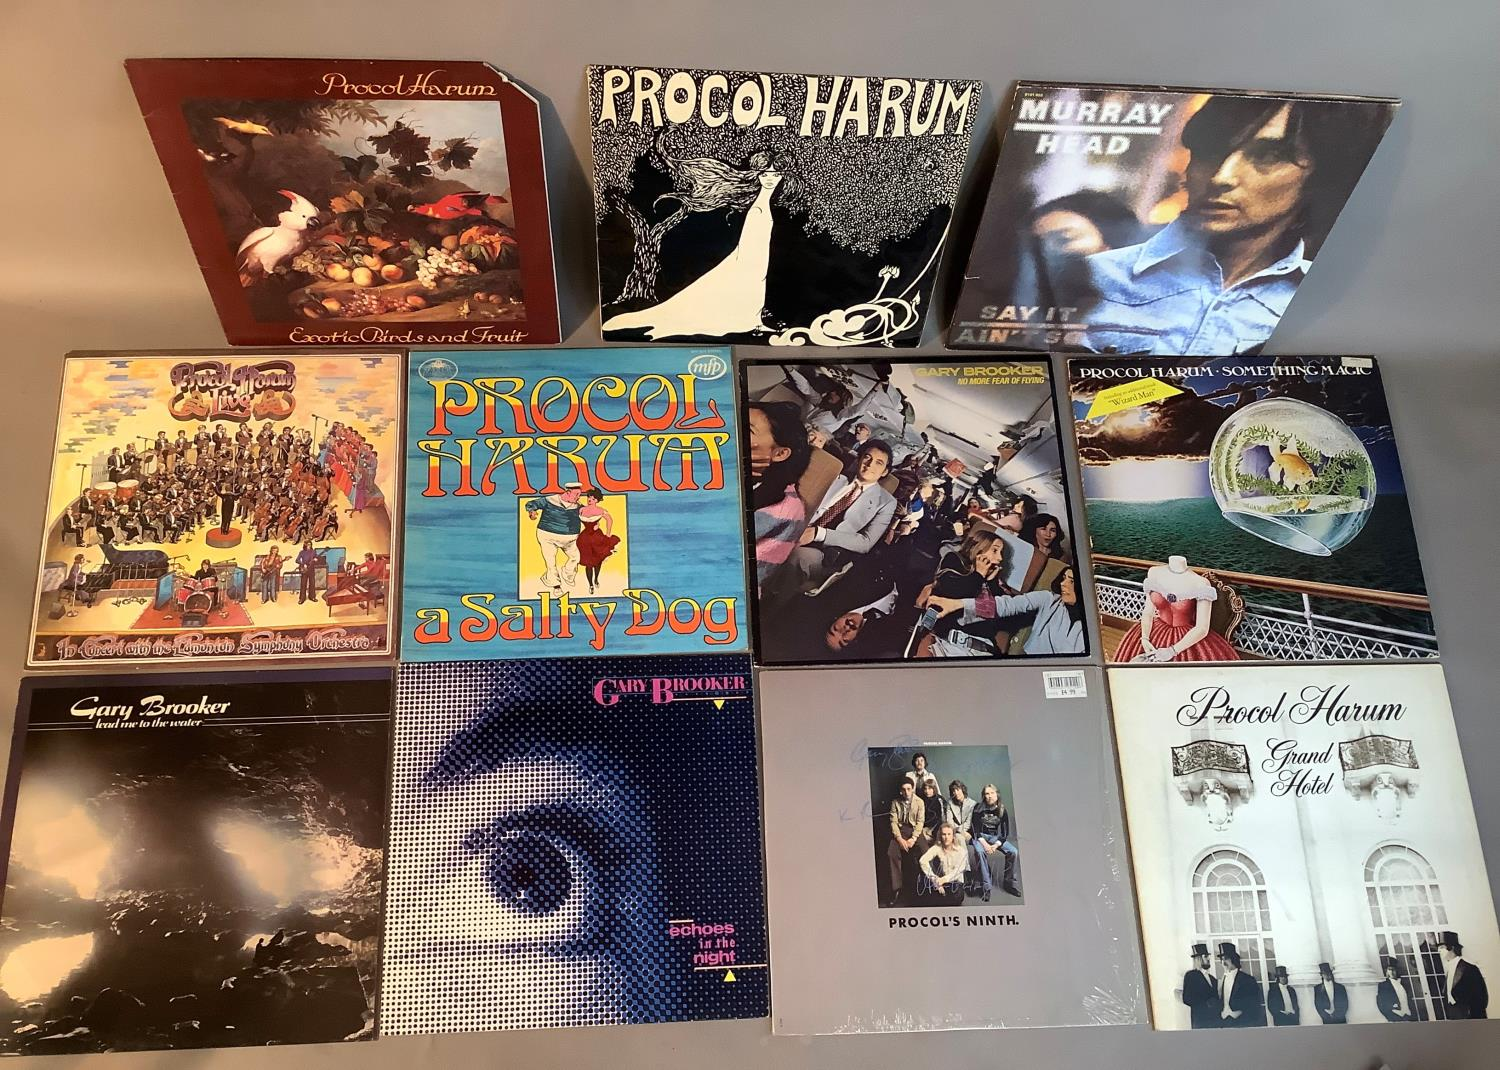 A quantity of LP's to include: Procul Harum - Procul Harum, Procul Harum - A Salty Dog, Procul Harum - Image 3 of 3